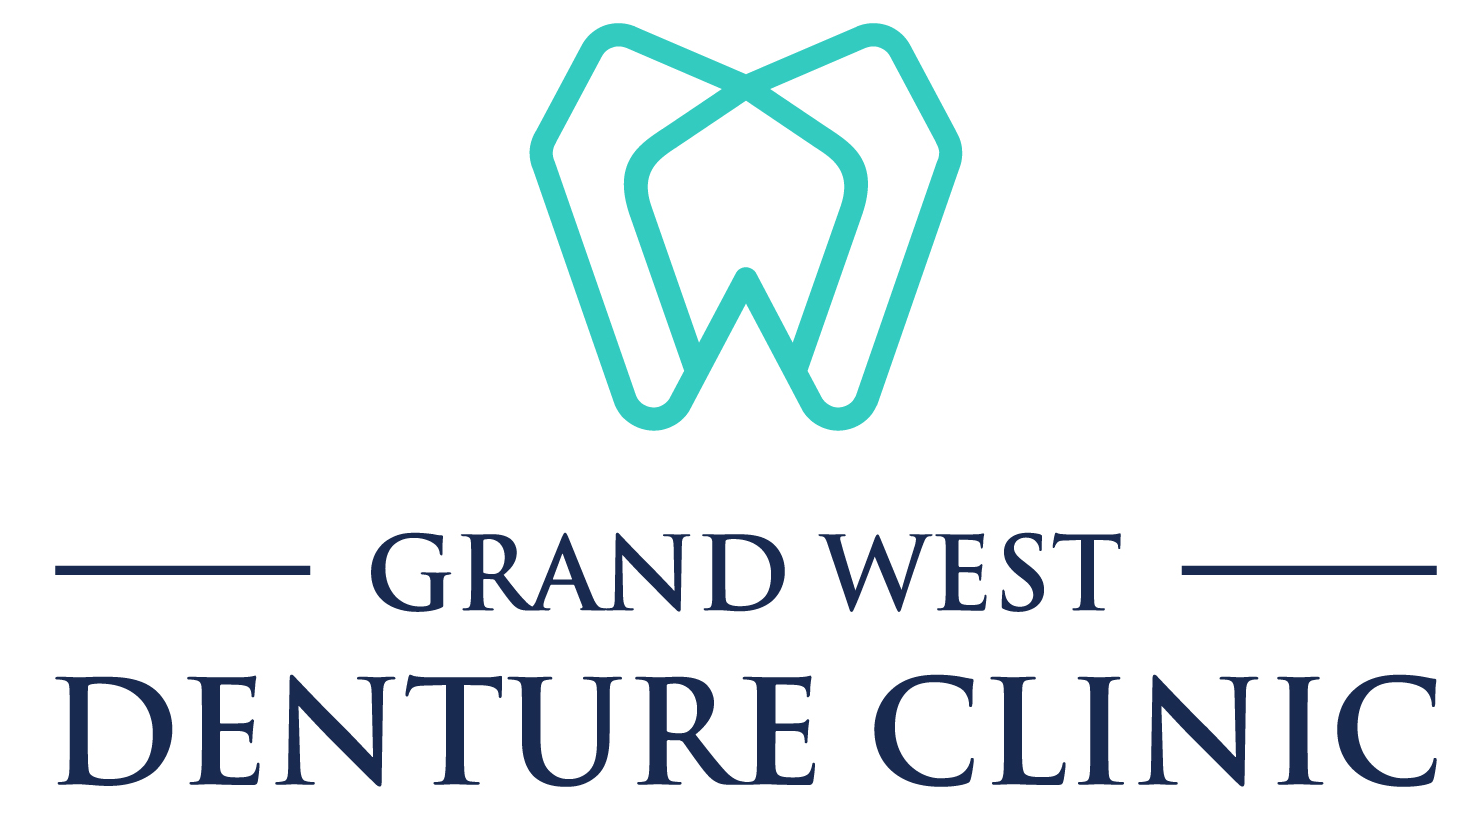 Grand West Denture Clinic